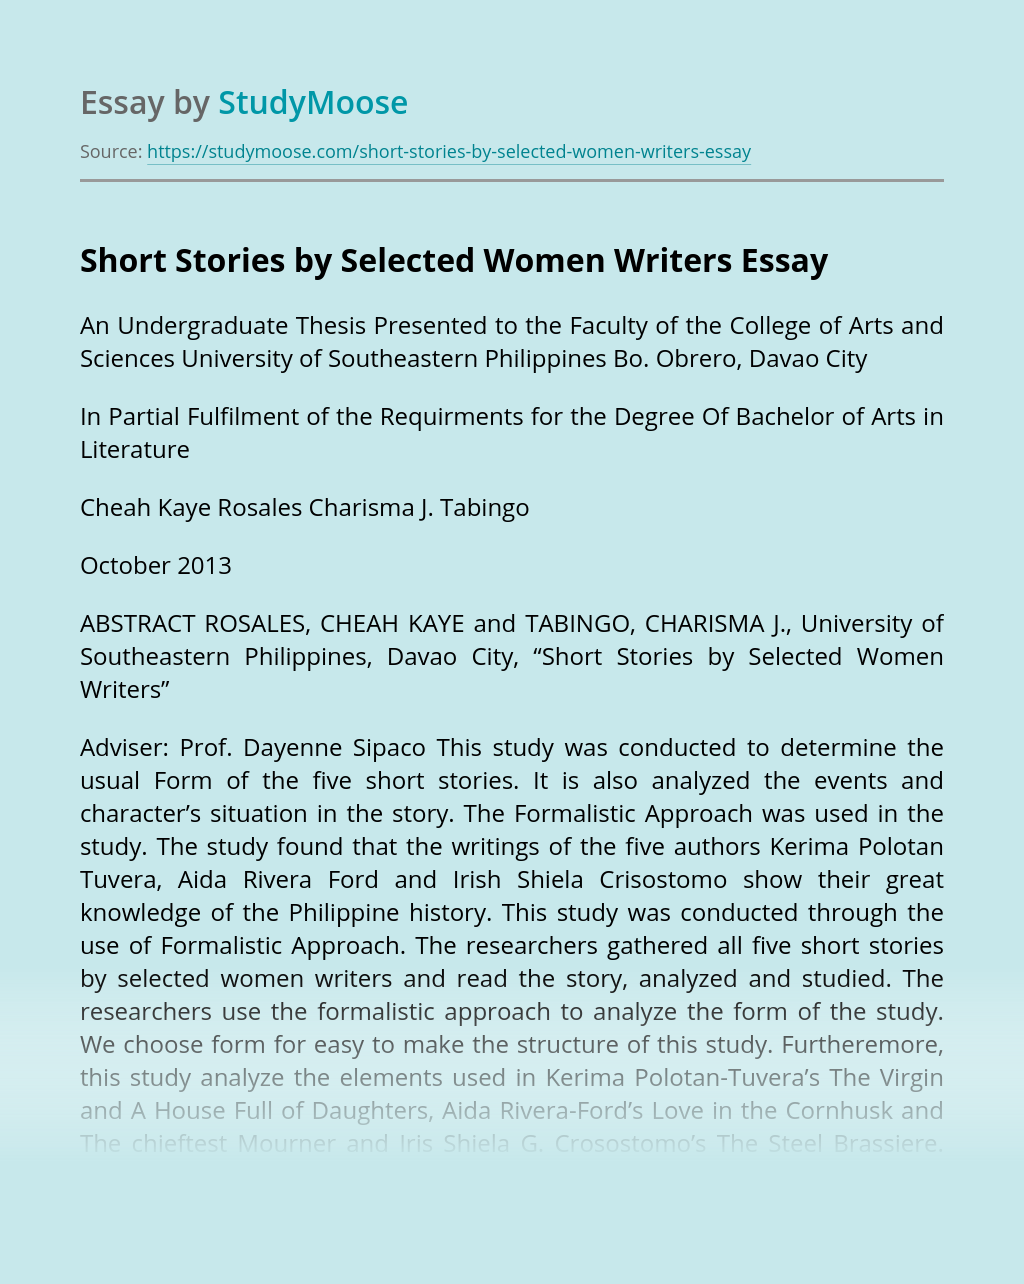 Short Stories by Selected Women Writers